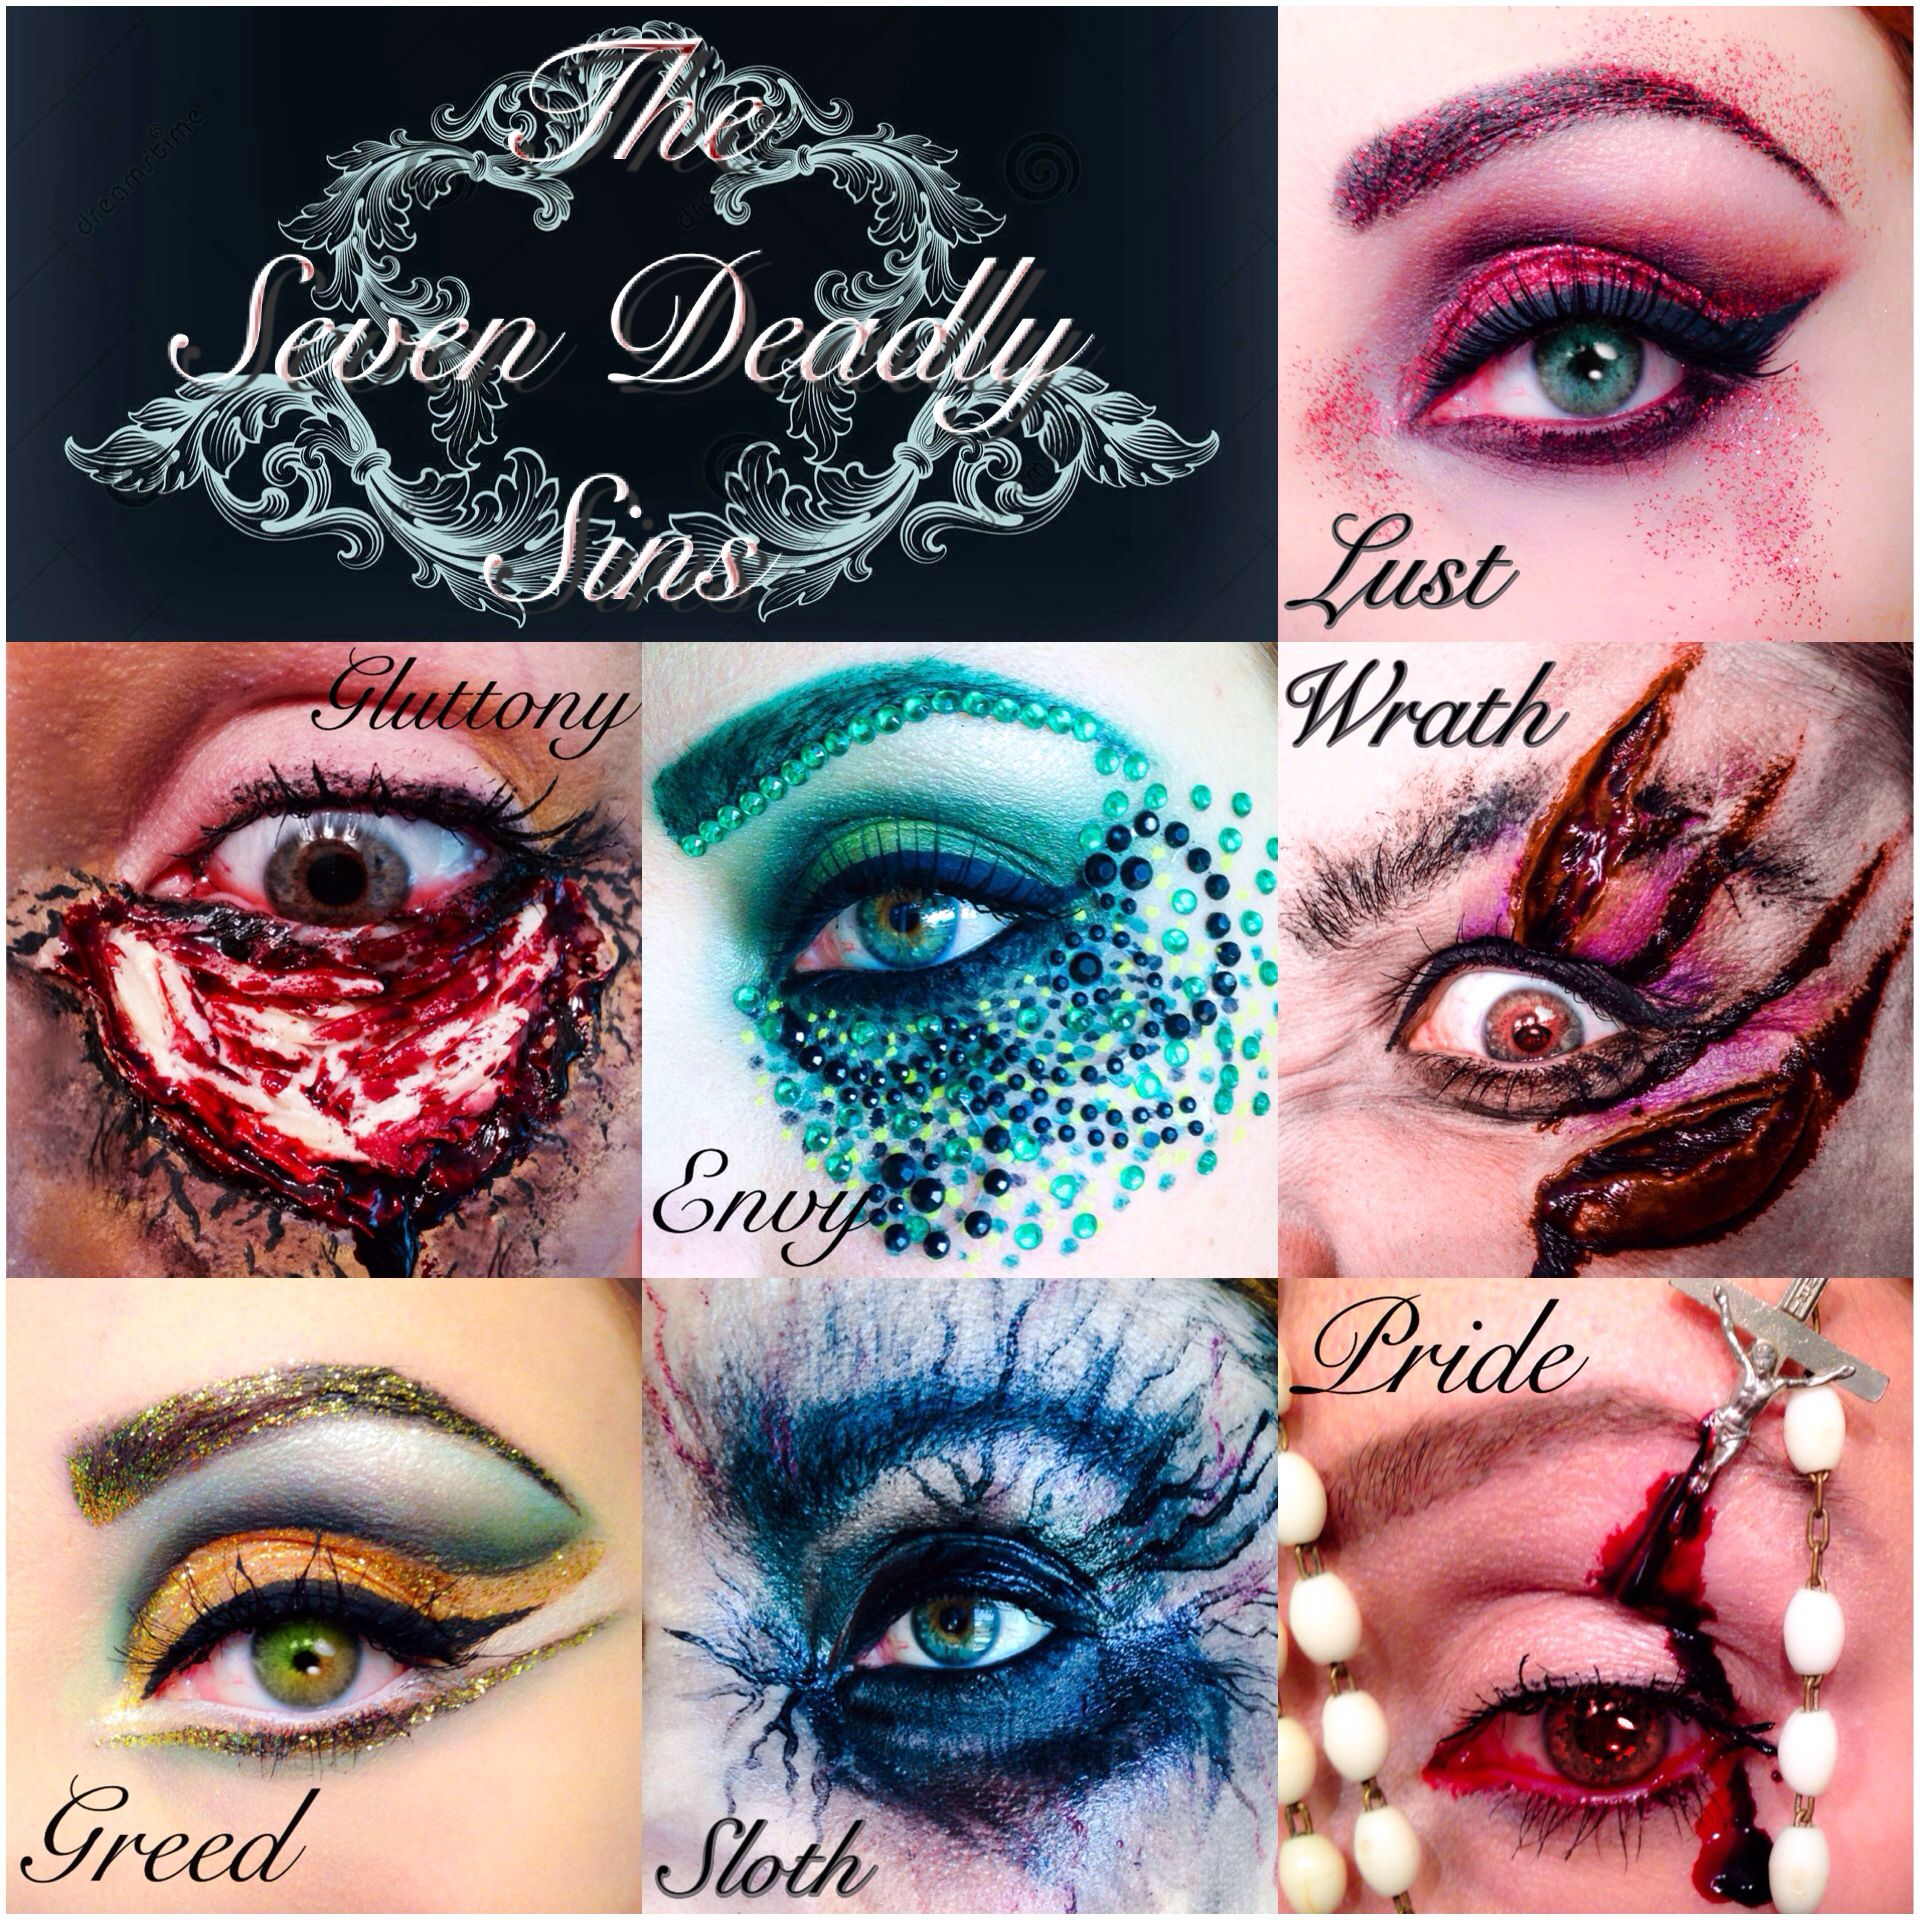 seven deadly sins eye makeup doll make up pinterest halloween kost m halloween und wasser. Black Bedroom Furniture Sets. Home Design Ideas